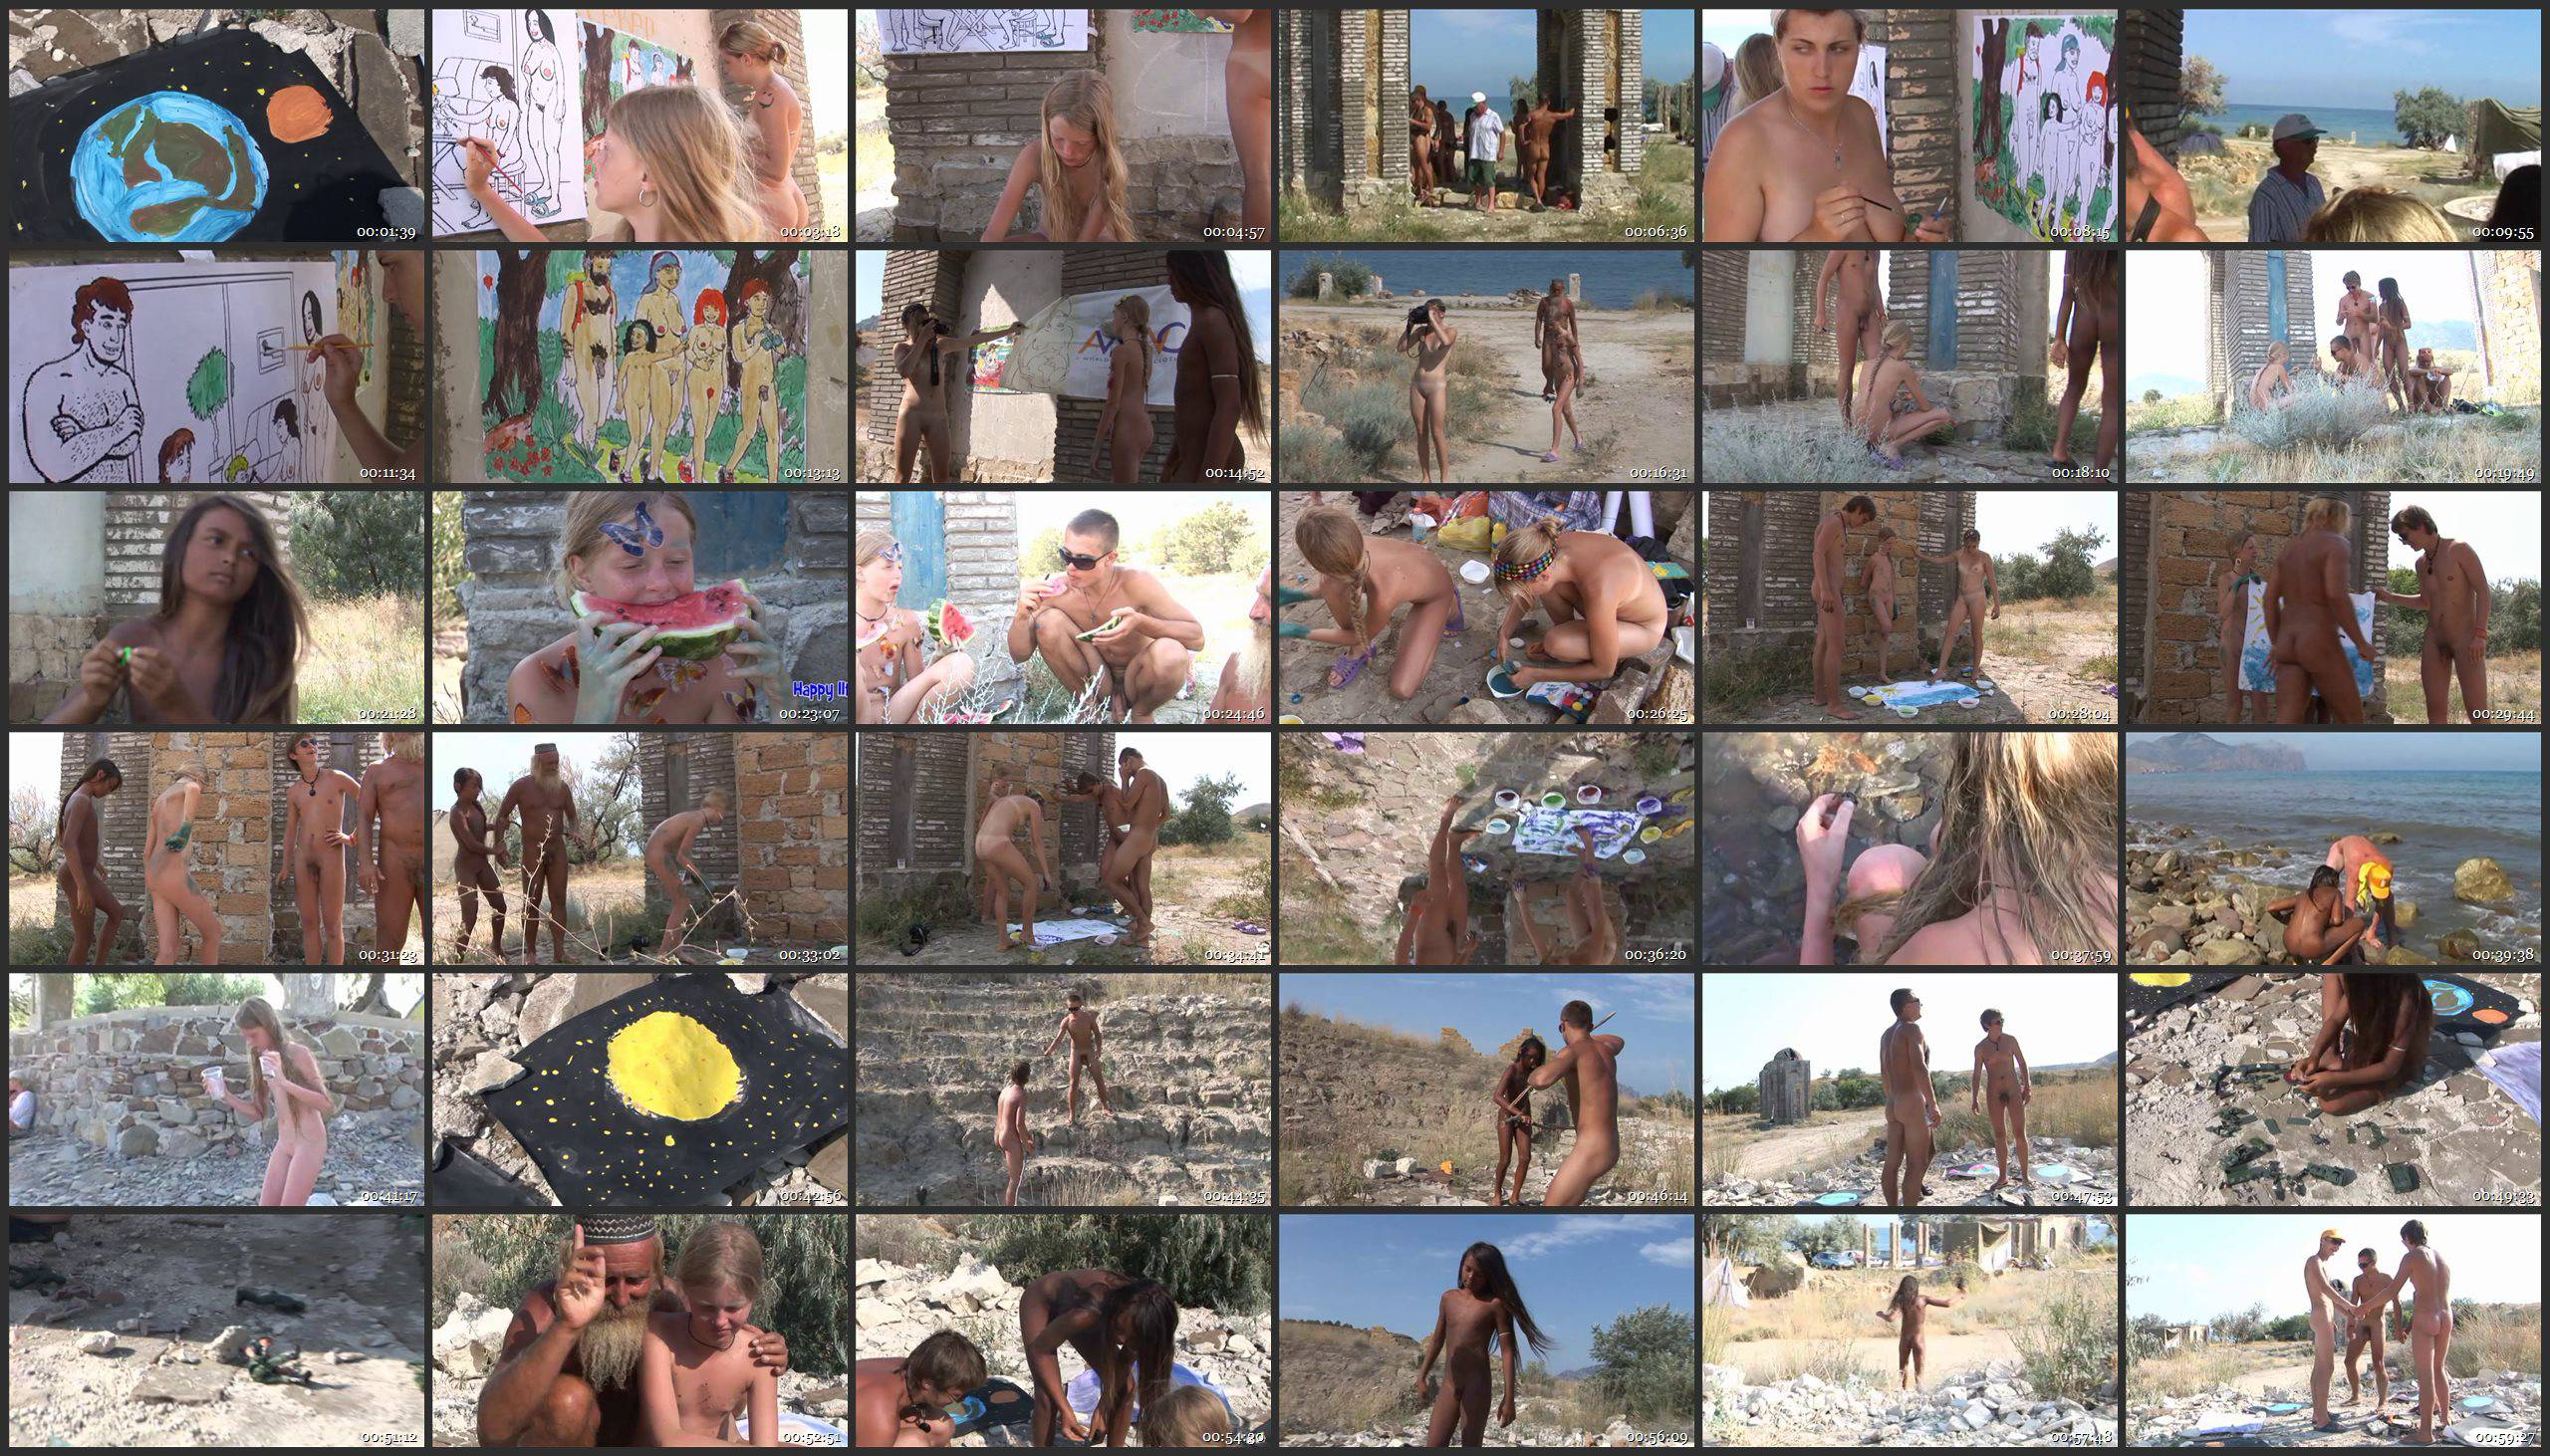 RussianBare-Naked Art - Unlimited - Thumbnails